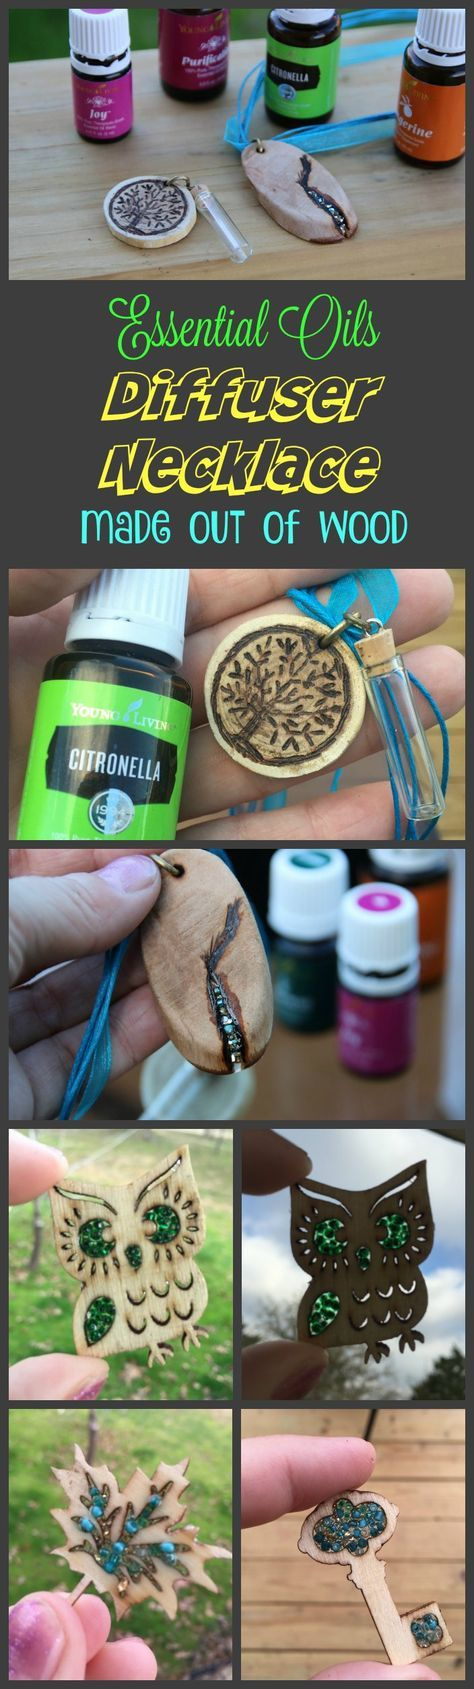 DIY Essential Oils Diffuser Necklace Made out of Wood -  The oil scent lasts a LONG time on wood!  iSaveA2Z.com